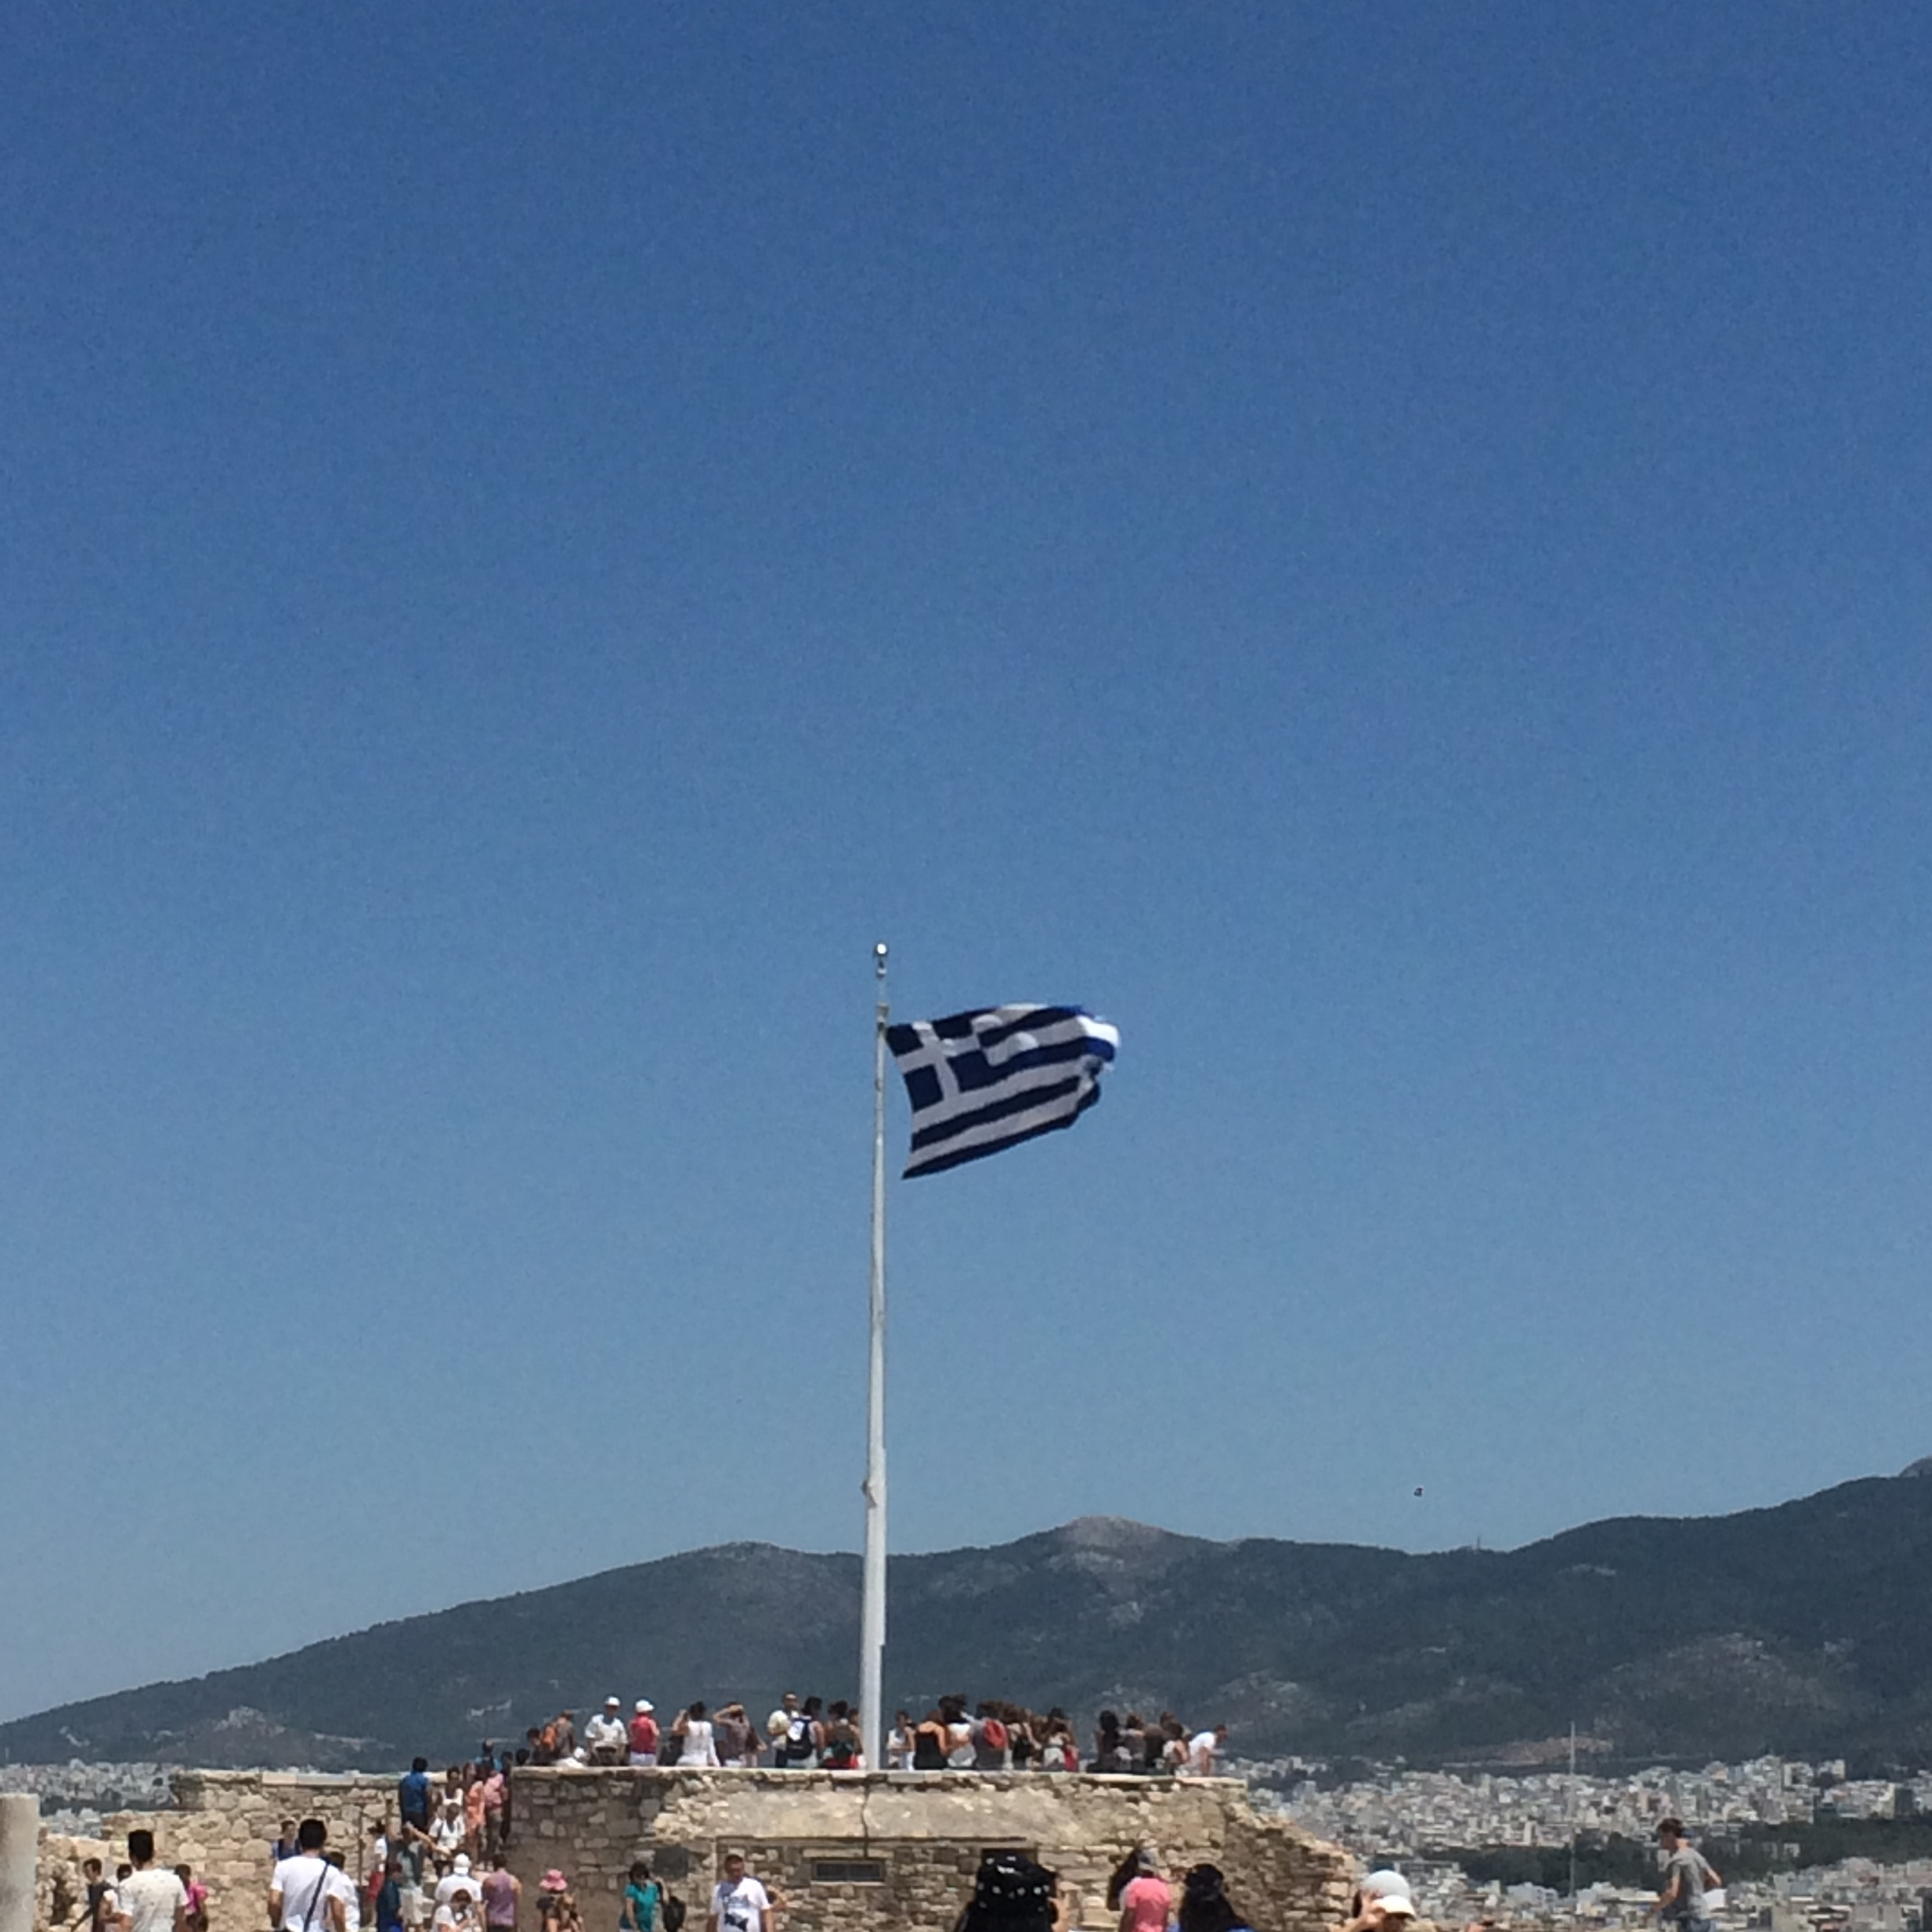 Greece was such a hospitable place despite the economic struggle. We encountered such wonderful people.